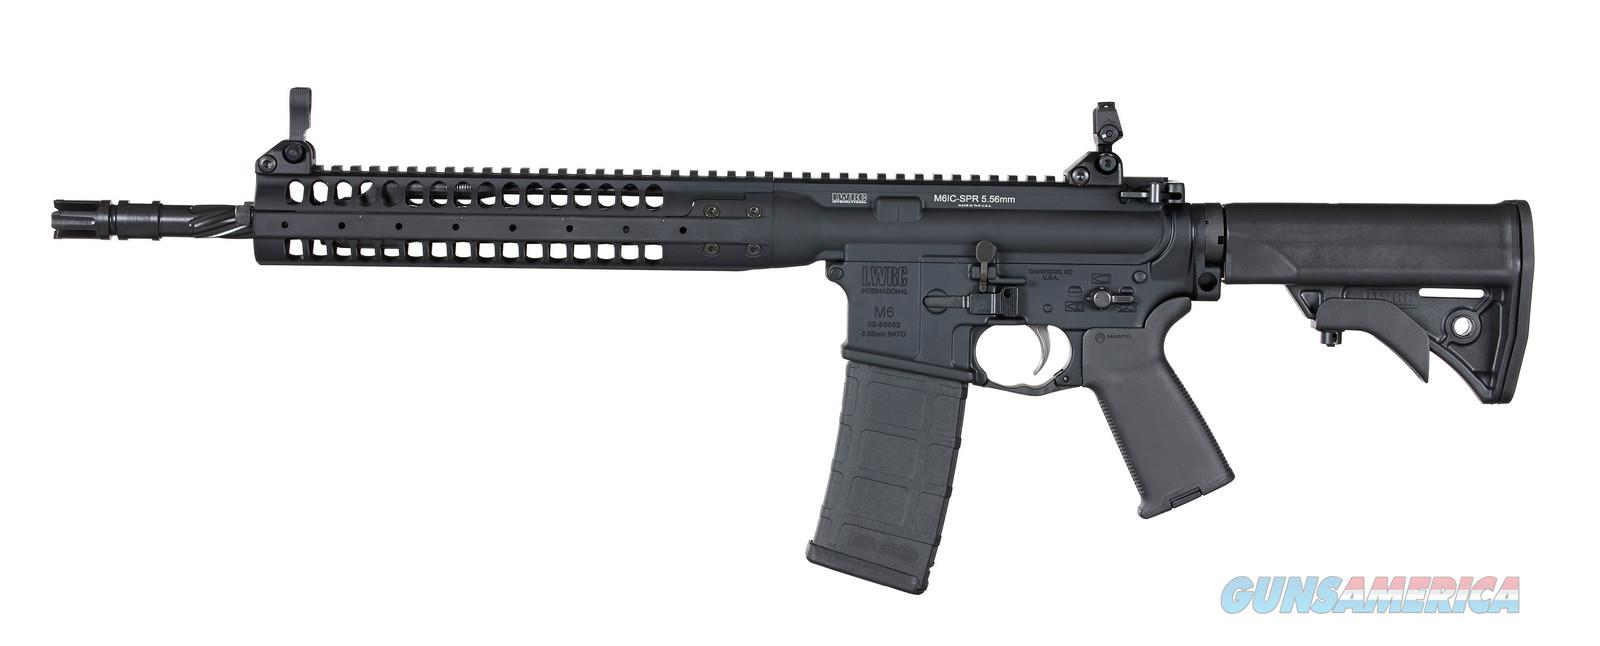 "*CA COMPLIANT* LWRC IC SPR 16"" BLACK 5.56  Guns > Rifles > AR-15 Rifles - Small Manufacturers > Complete Rifle"